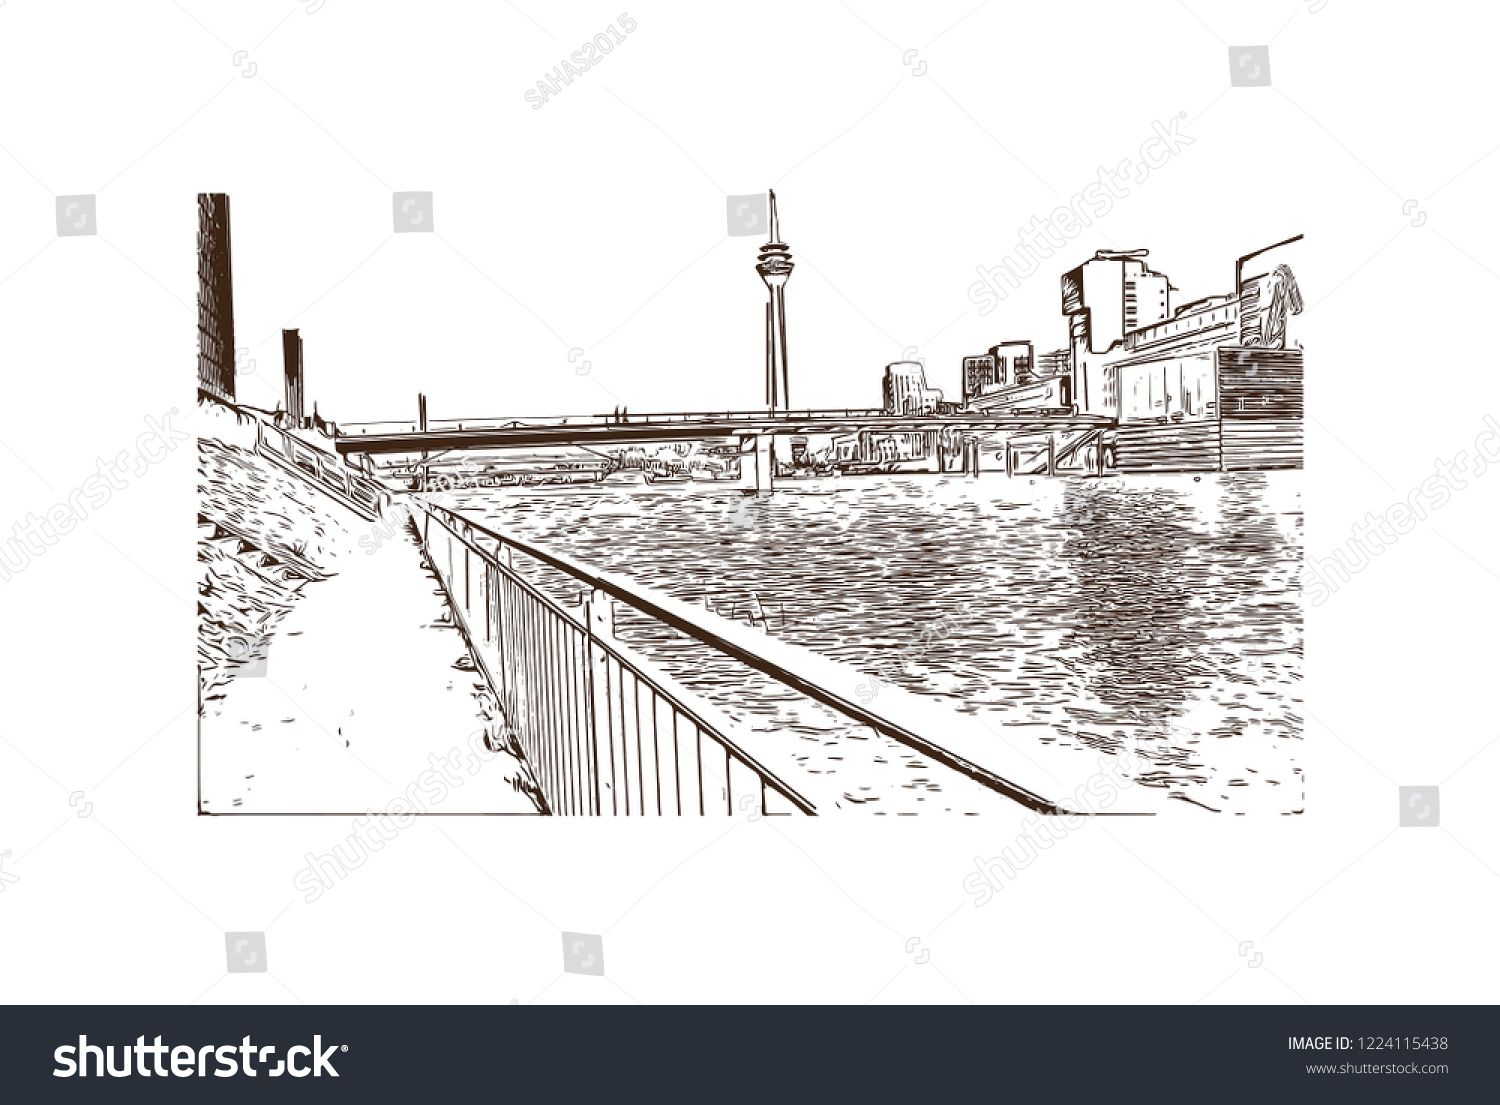 Building view with landmark of Dusseldorf is a city in western Germany known for its fashion industry and art scene. Hand drawn sketch illustration in vector. #Sponsored , #sponsored, #western#city#fashion#Germany